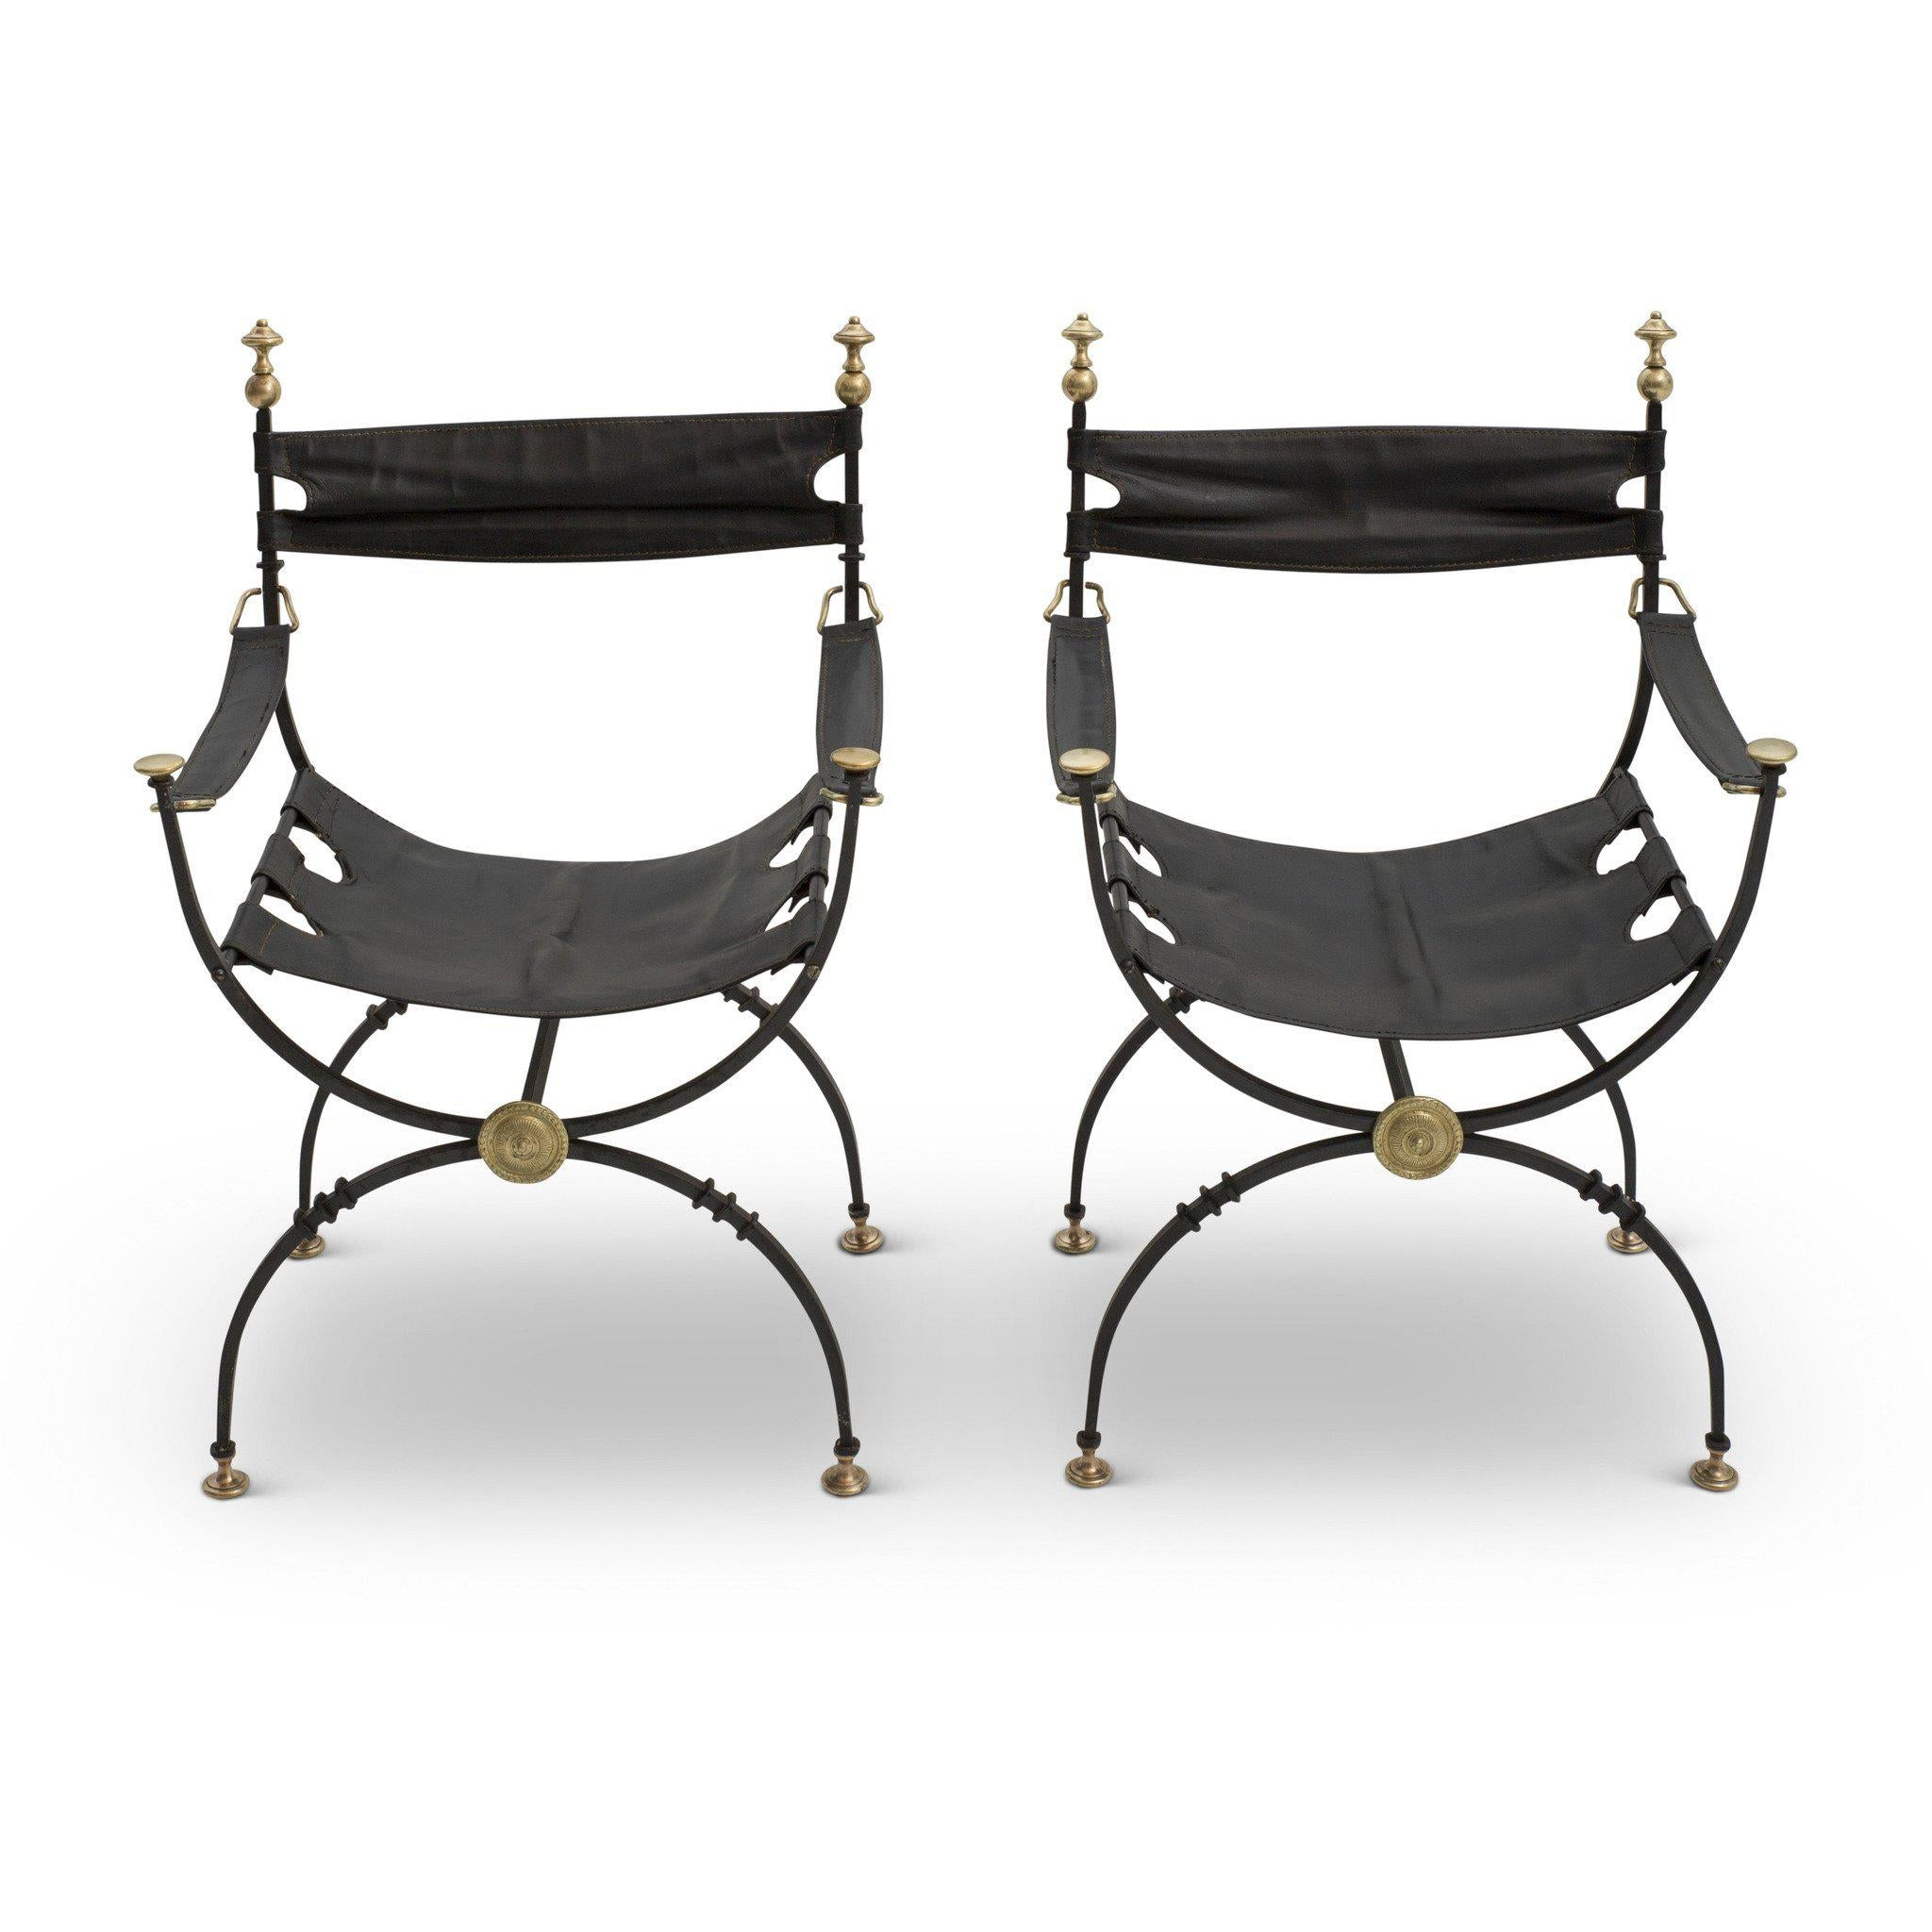 Pair of 1931 Iron and Leather Savonarola Chairs